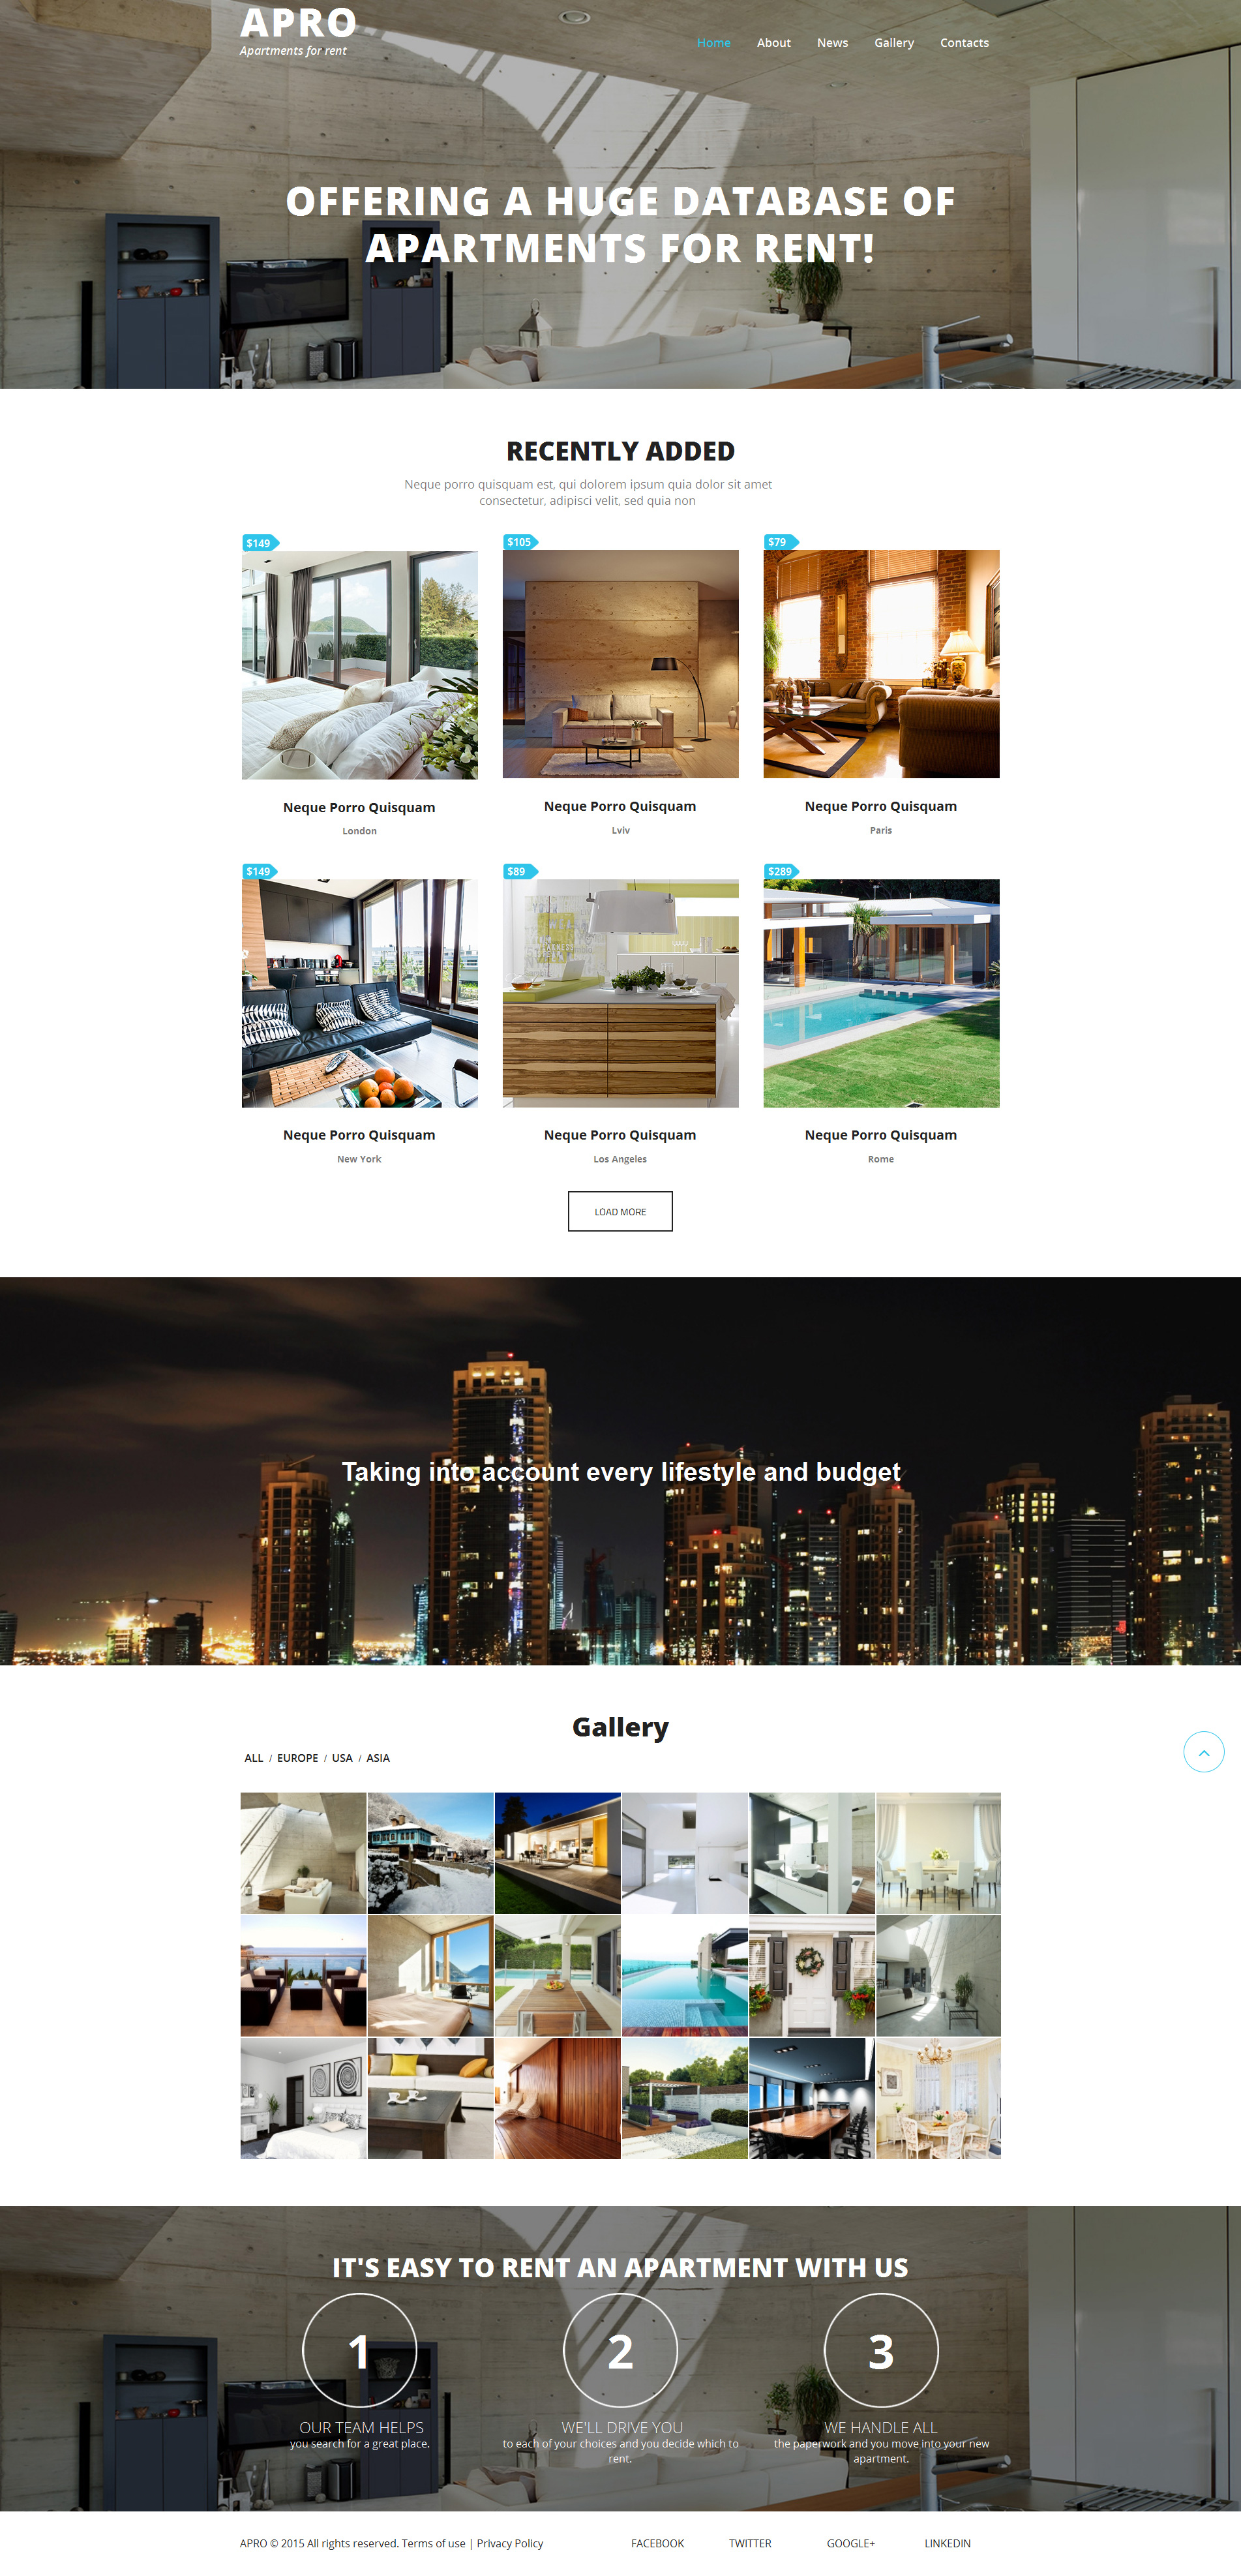 The Apro Appartment For Rent Moto CMS 3 Templates Design 53828, one of the best Moto CMS 3 templates of its kind (real estate), also known as apro appartment for rent Moto CMS 3 template, real estate agency Moto CMS 3 template, services Moto CMS 3 template, house Moto CMS 3 template, home Moto CMS 3 template, apartment Moto CMS 3 template, buildings Moto CMS 3 template, finance Moto CMS 3 template, loan Moto CMS 3 template, sales Moto CMS 3 template, rentals Moto CMS 3 template, management Moto CMS 3 template, search Moto CMS 3 template, team Moto CMS 3 template, money Moto CMS 3 template, foreclosure Moto CMS 3 template, estimator Moto CMS 3 template, investment Moto CMS 3 template, development Moto CMS 3 template, constructions Moto CMS 3 template, architecture Moto CMS 3 template, engineering Moto CMS 3 template, apartment Moto CMS 3 template, sale Moto CMS 3 template, rent Moto CMS 3 template, architecture Moto CMS 3 template, broker Moto CMS 3 template, lots and related with apro appartment for rent, real estate agency, services, house, home, apartment, buildings, finance, loan, sales, rentals, management, search, team, money, foreclosure, estimator, investment, development, constructions, architecture, engineering, apartment, sale, rent, architecture, broker, lots, etc.